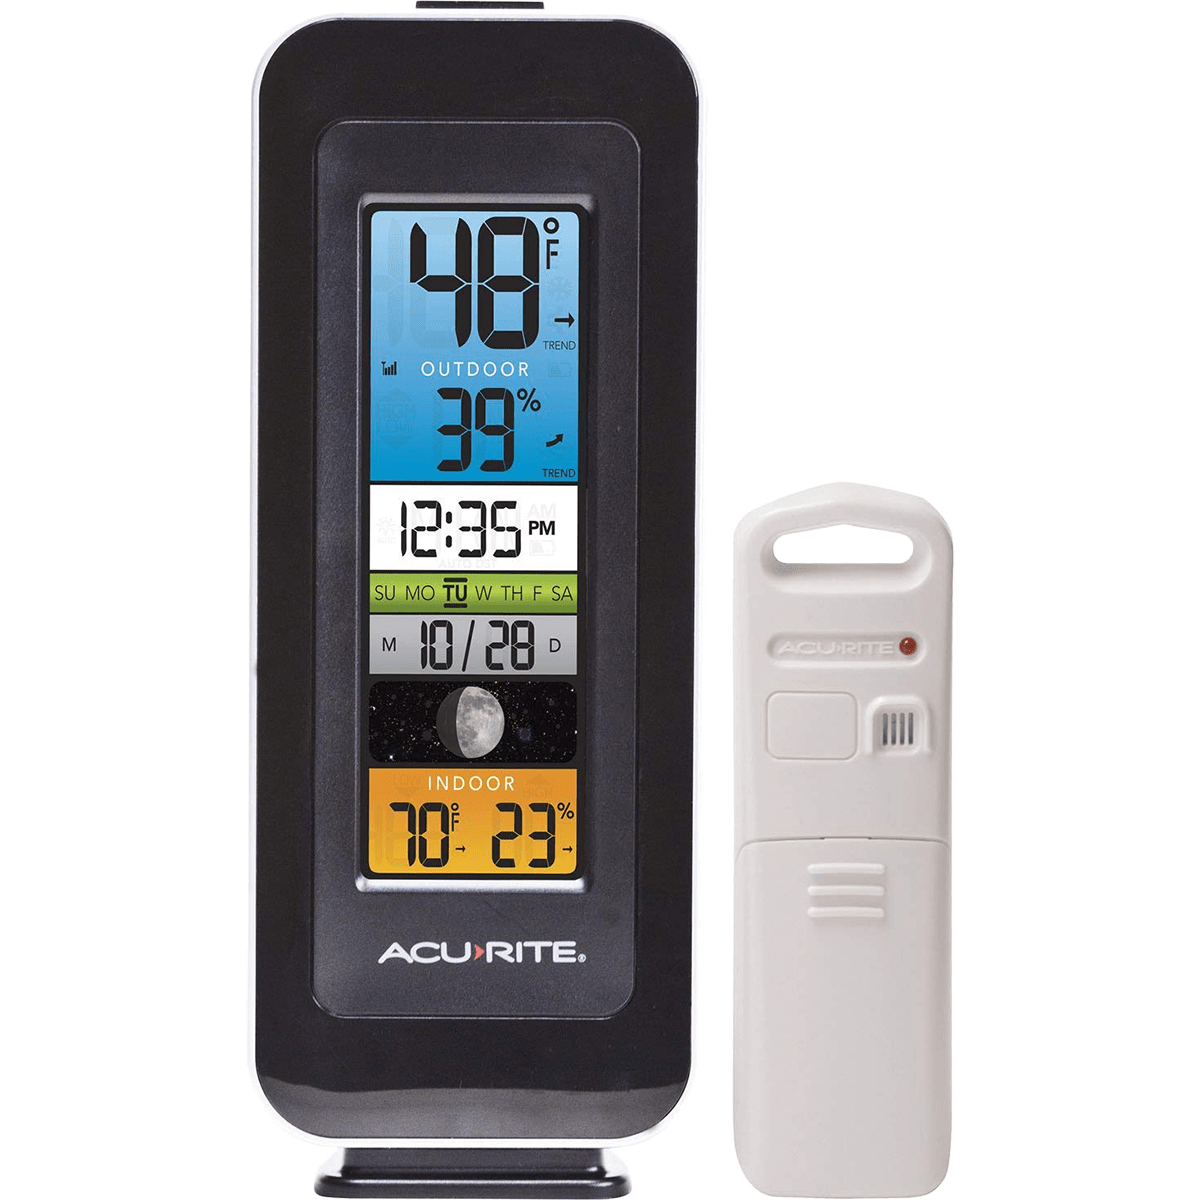 Acu-rite Digital Remote Thermometer / Hygrometer - Color